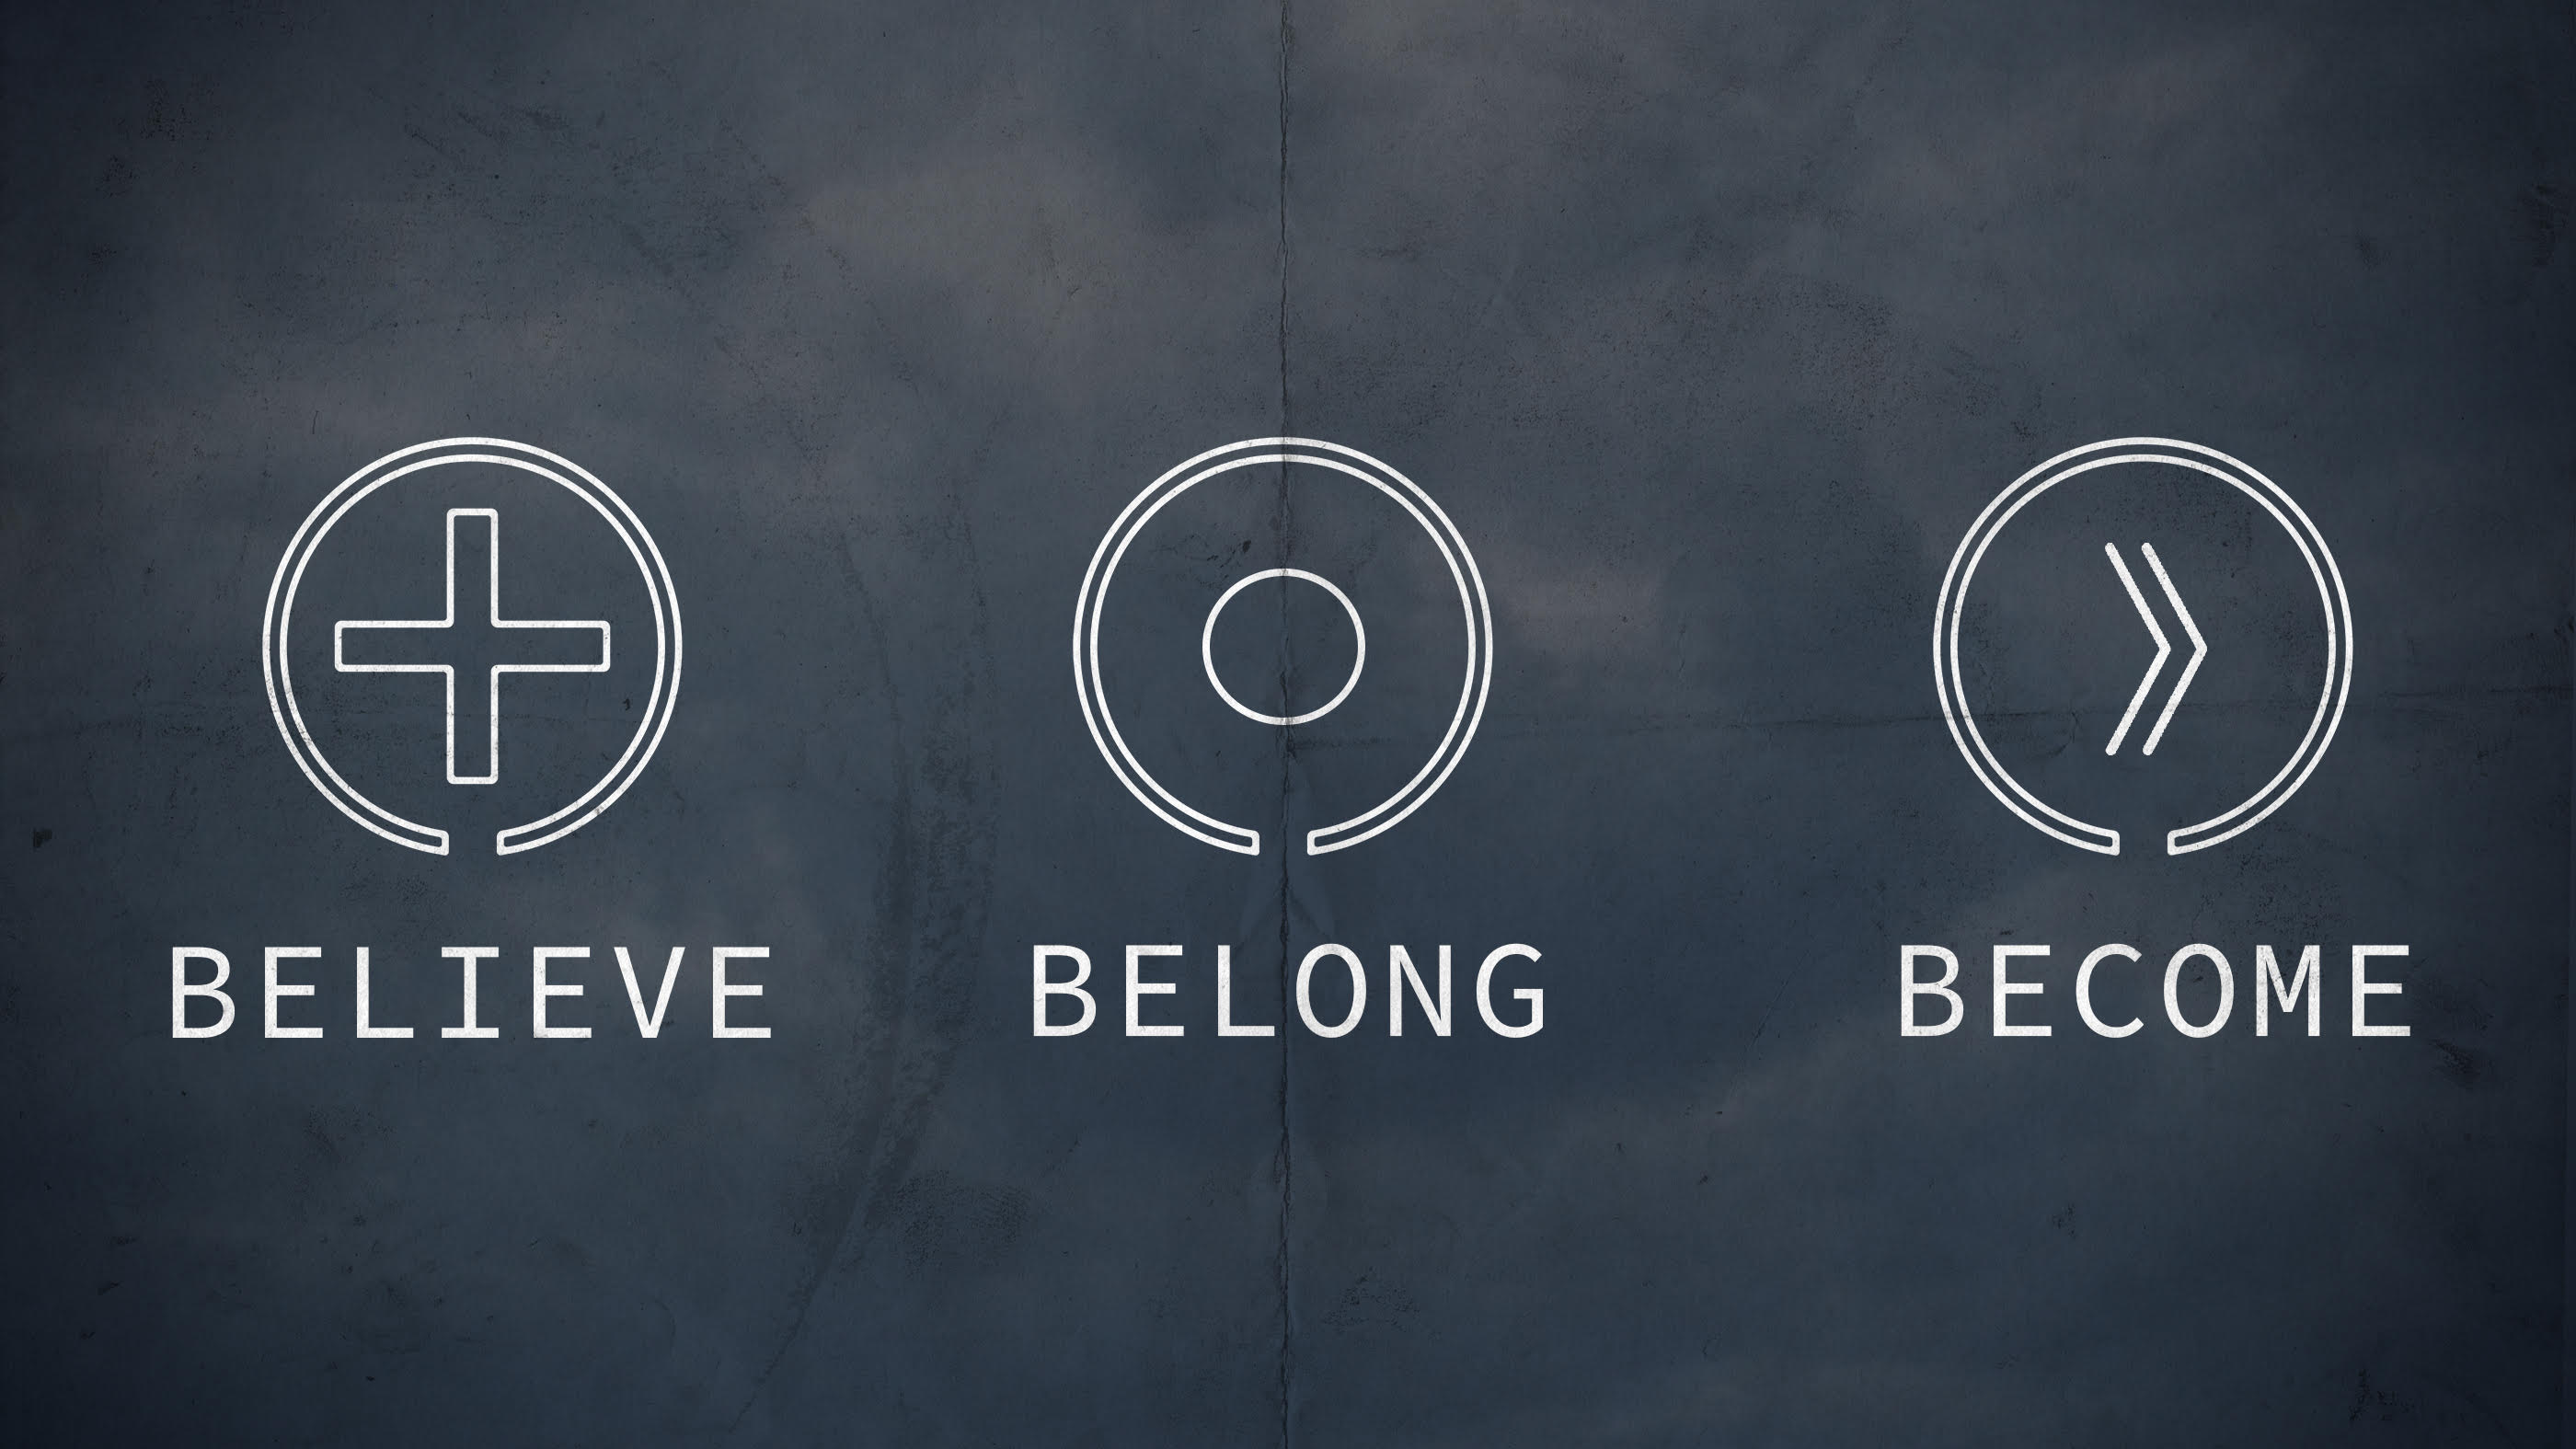 Believe | Belong | Become